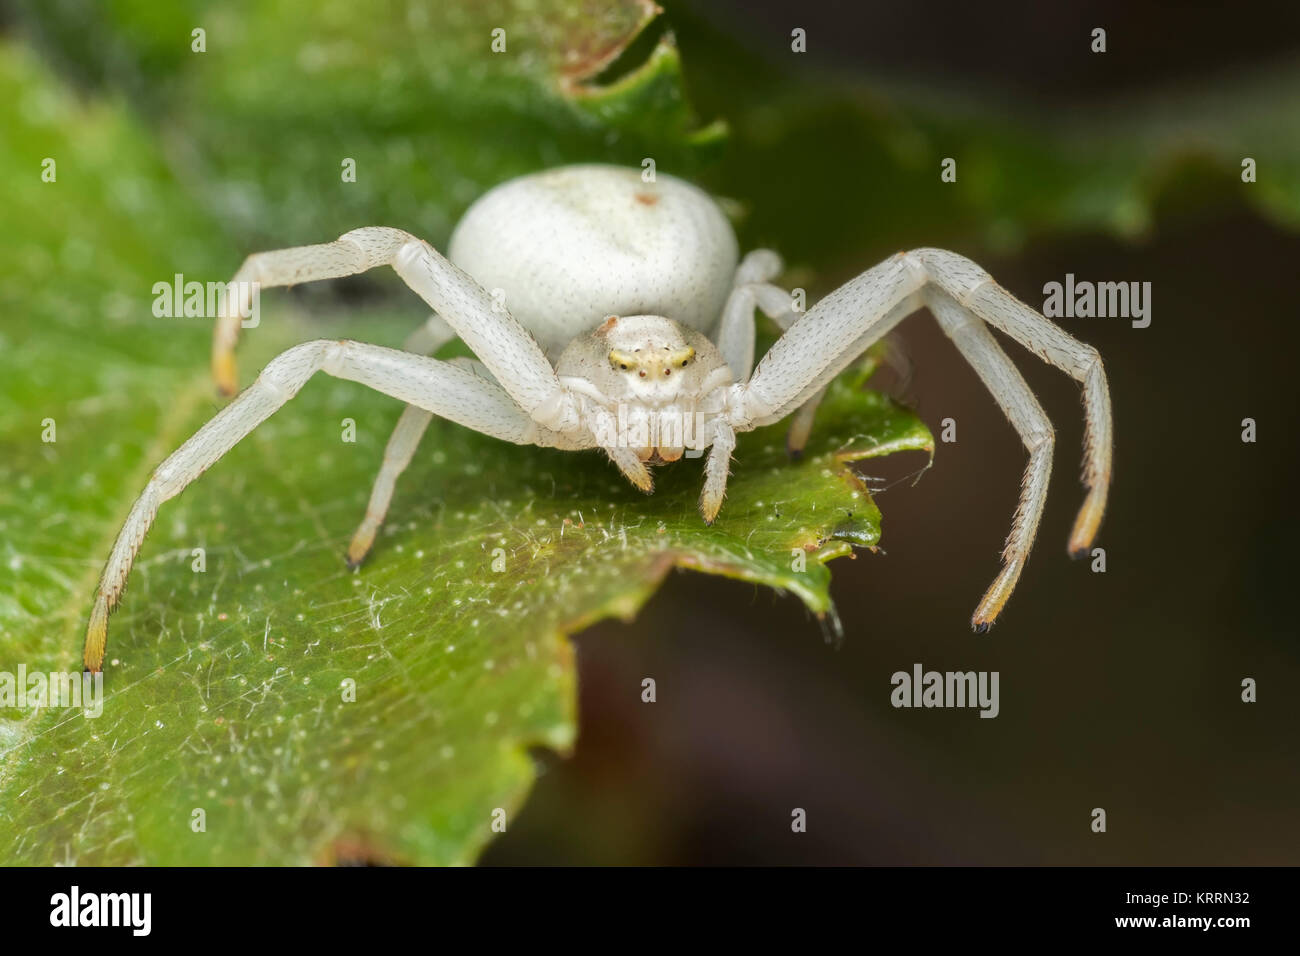 Crab Spider (Misumena vatia) poised on a leaf waiting for prey. Cahir, Tipperary, Ireland. - Stock Image